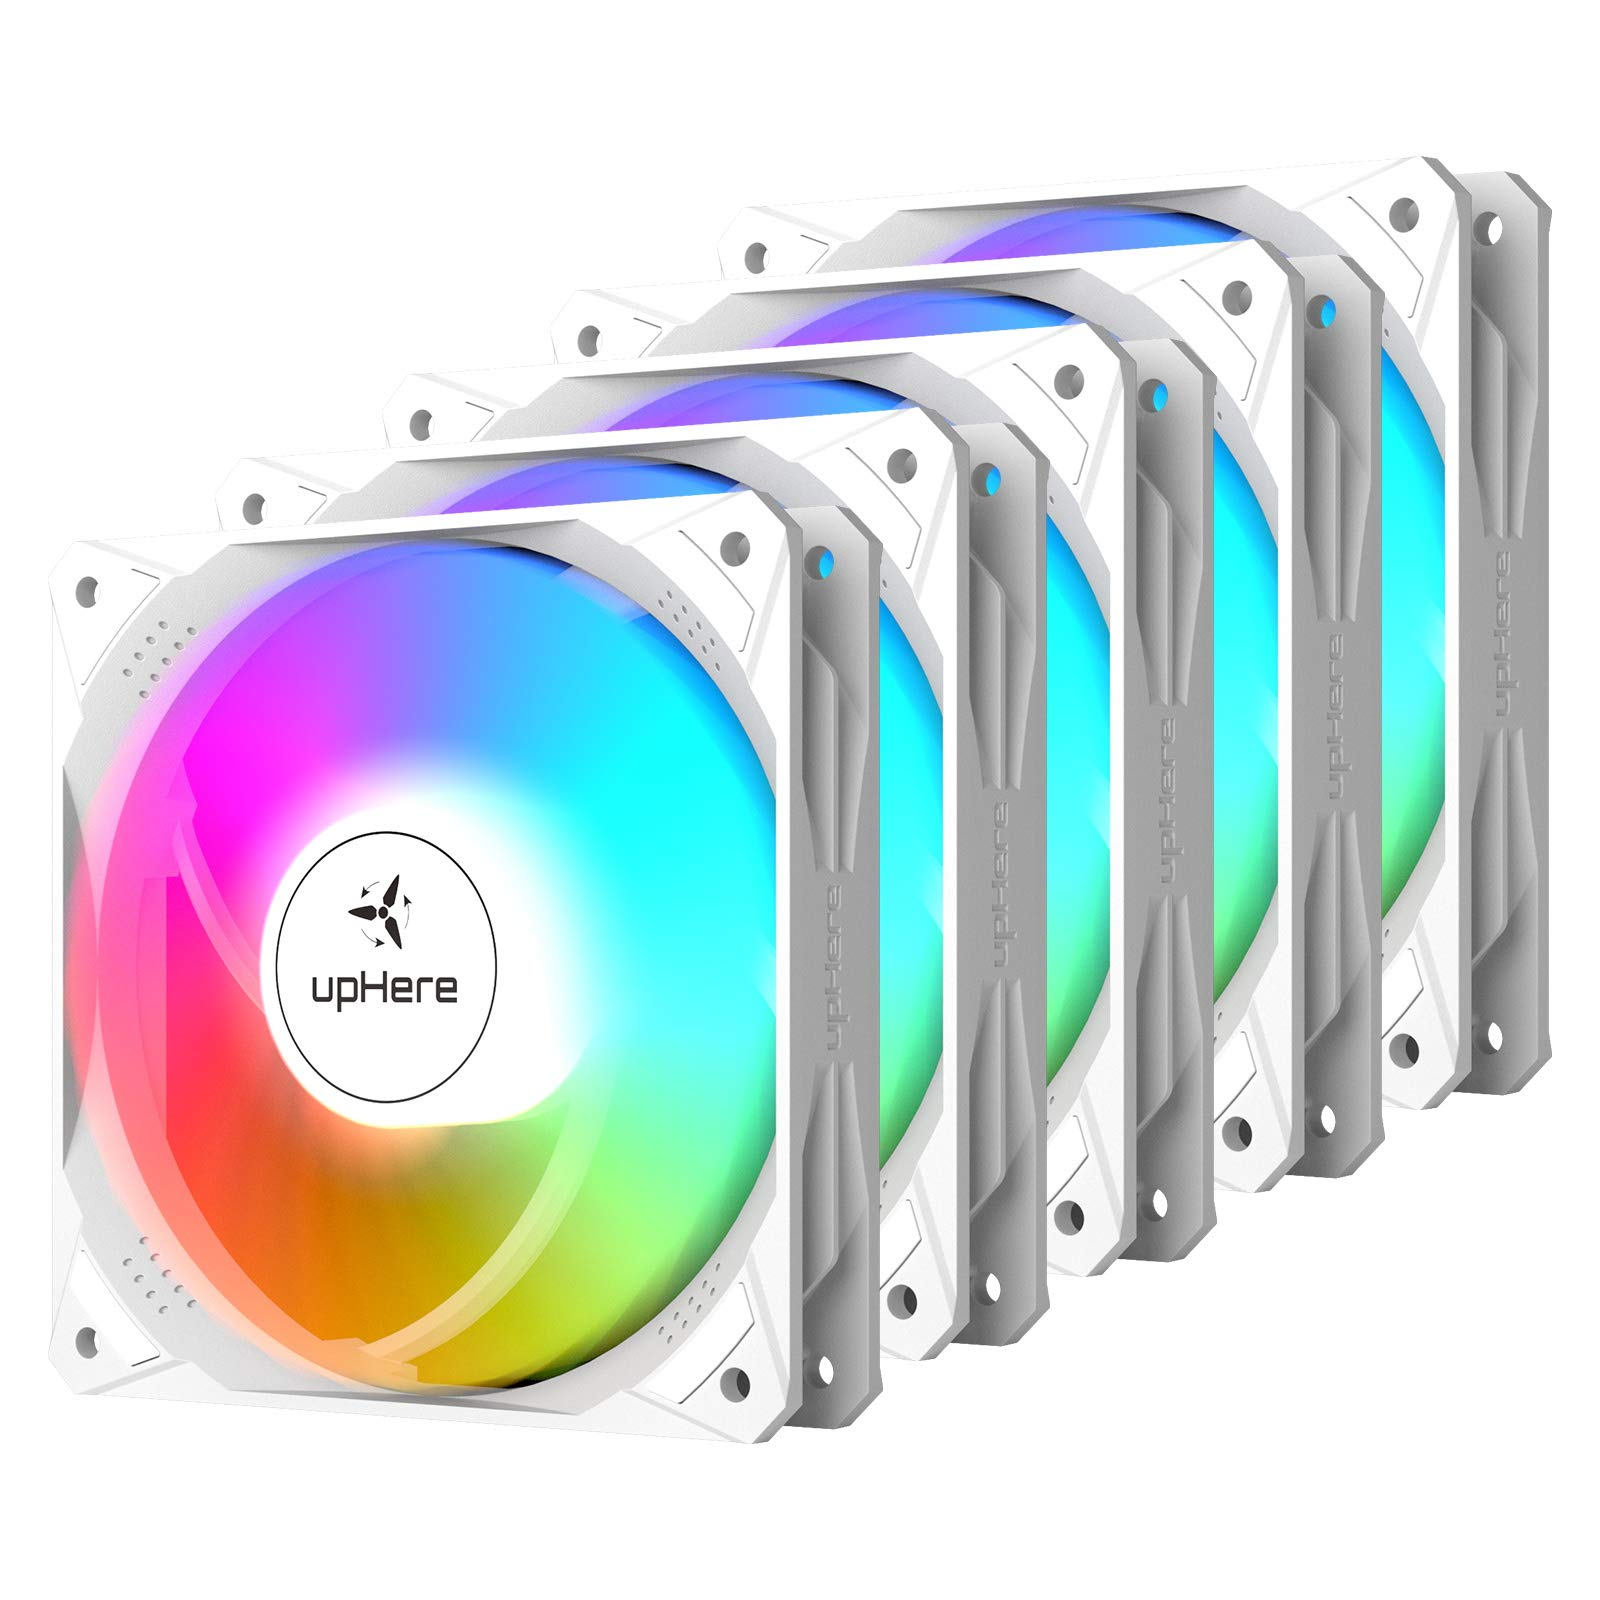 upHere 120mm White 5V ARGB Case Fan Long Life Hydraulic Bearing with Motherboard Sync 16.8 Million Colors Addressable LEDs,5 Pack,NT123+3-5